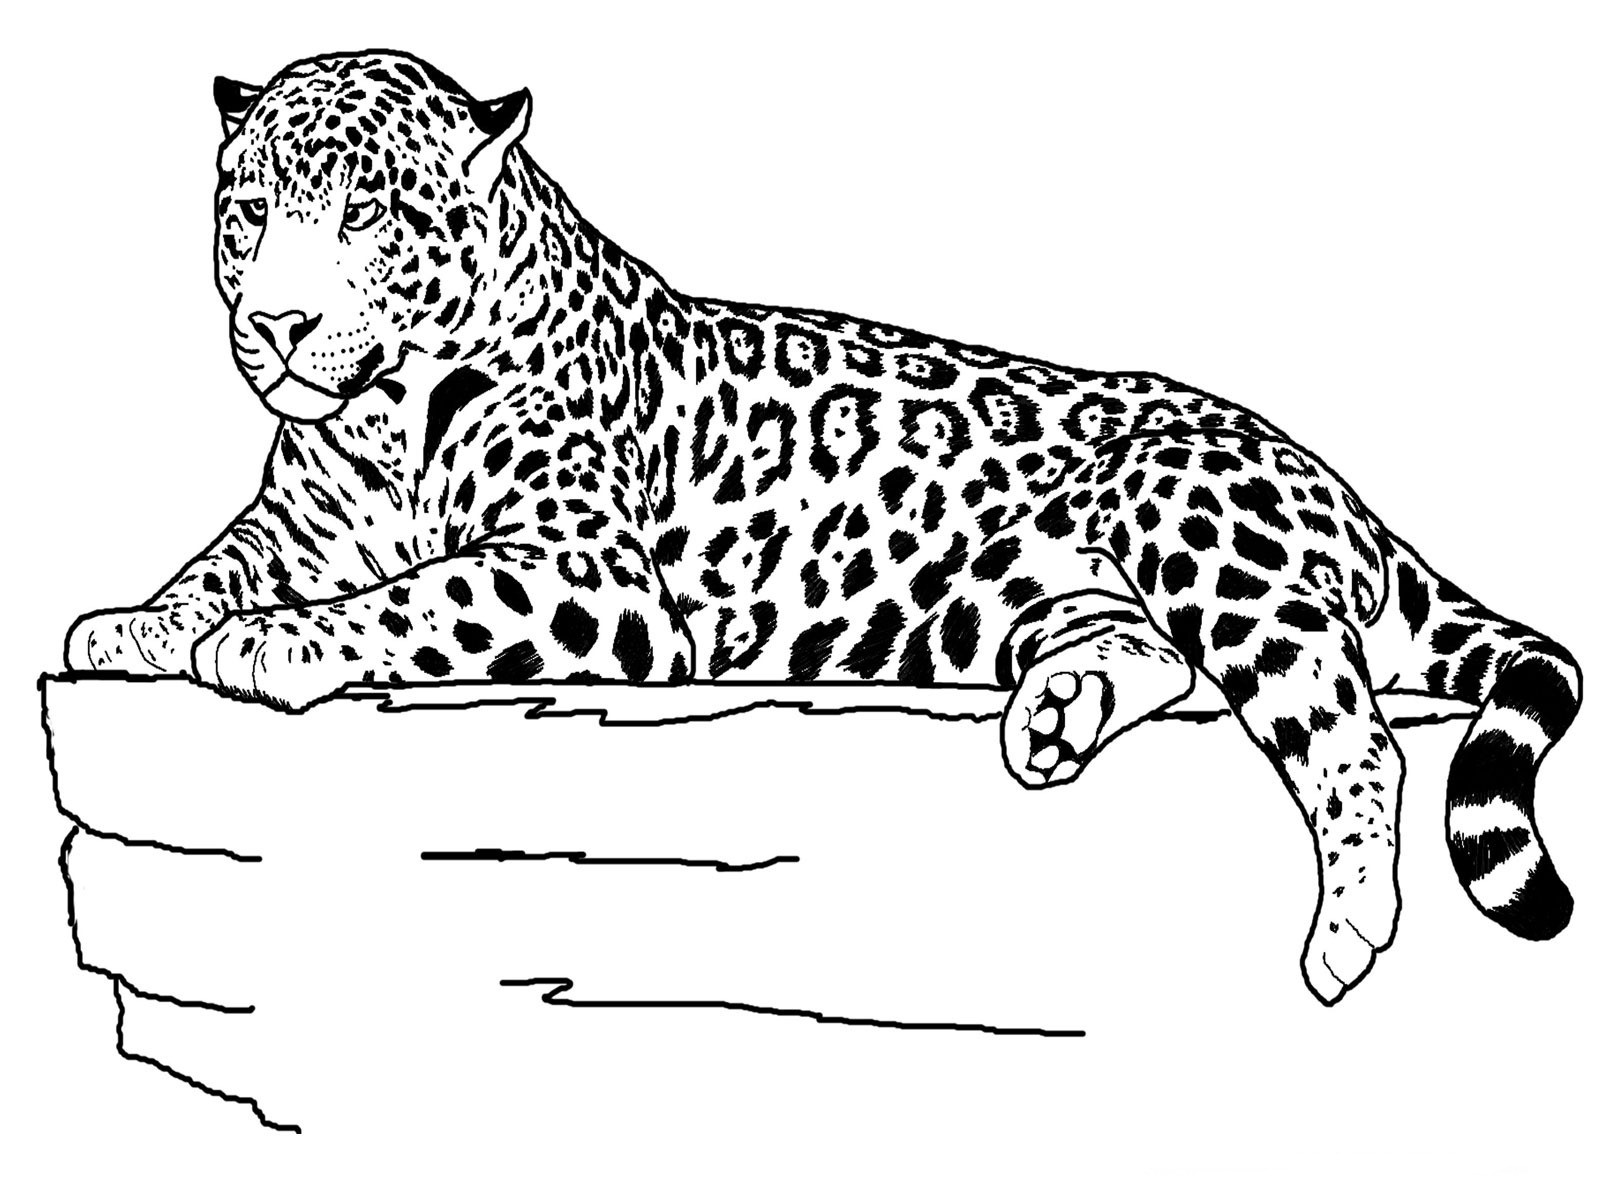 Printable Coloring Pages Of Animals  Free Printable Cheetah Coloring Pages For Kids